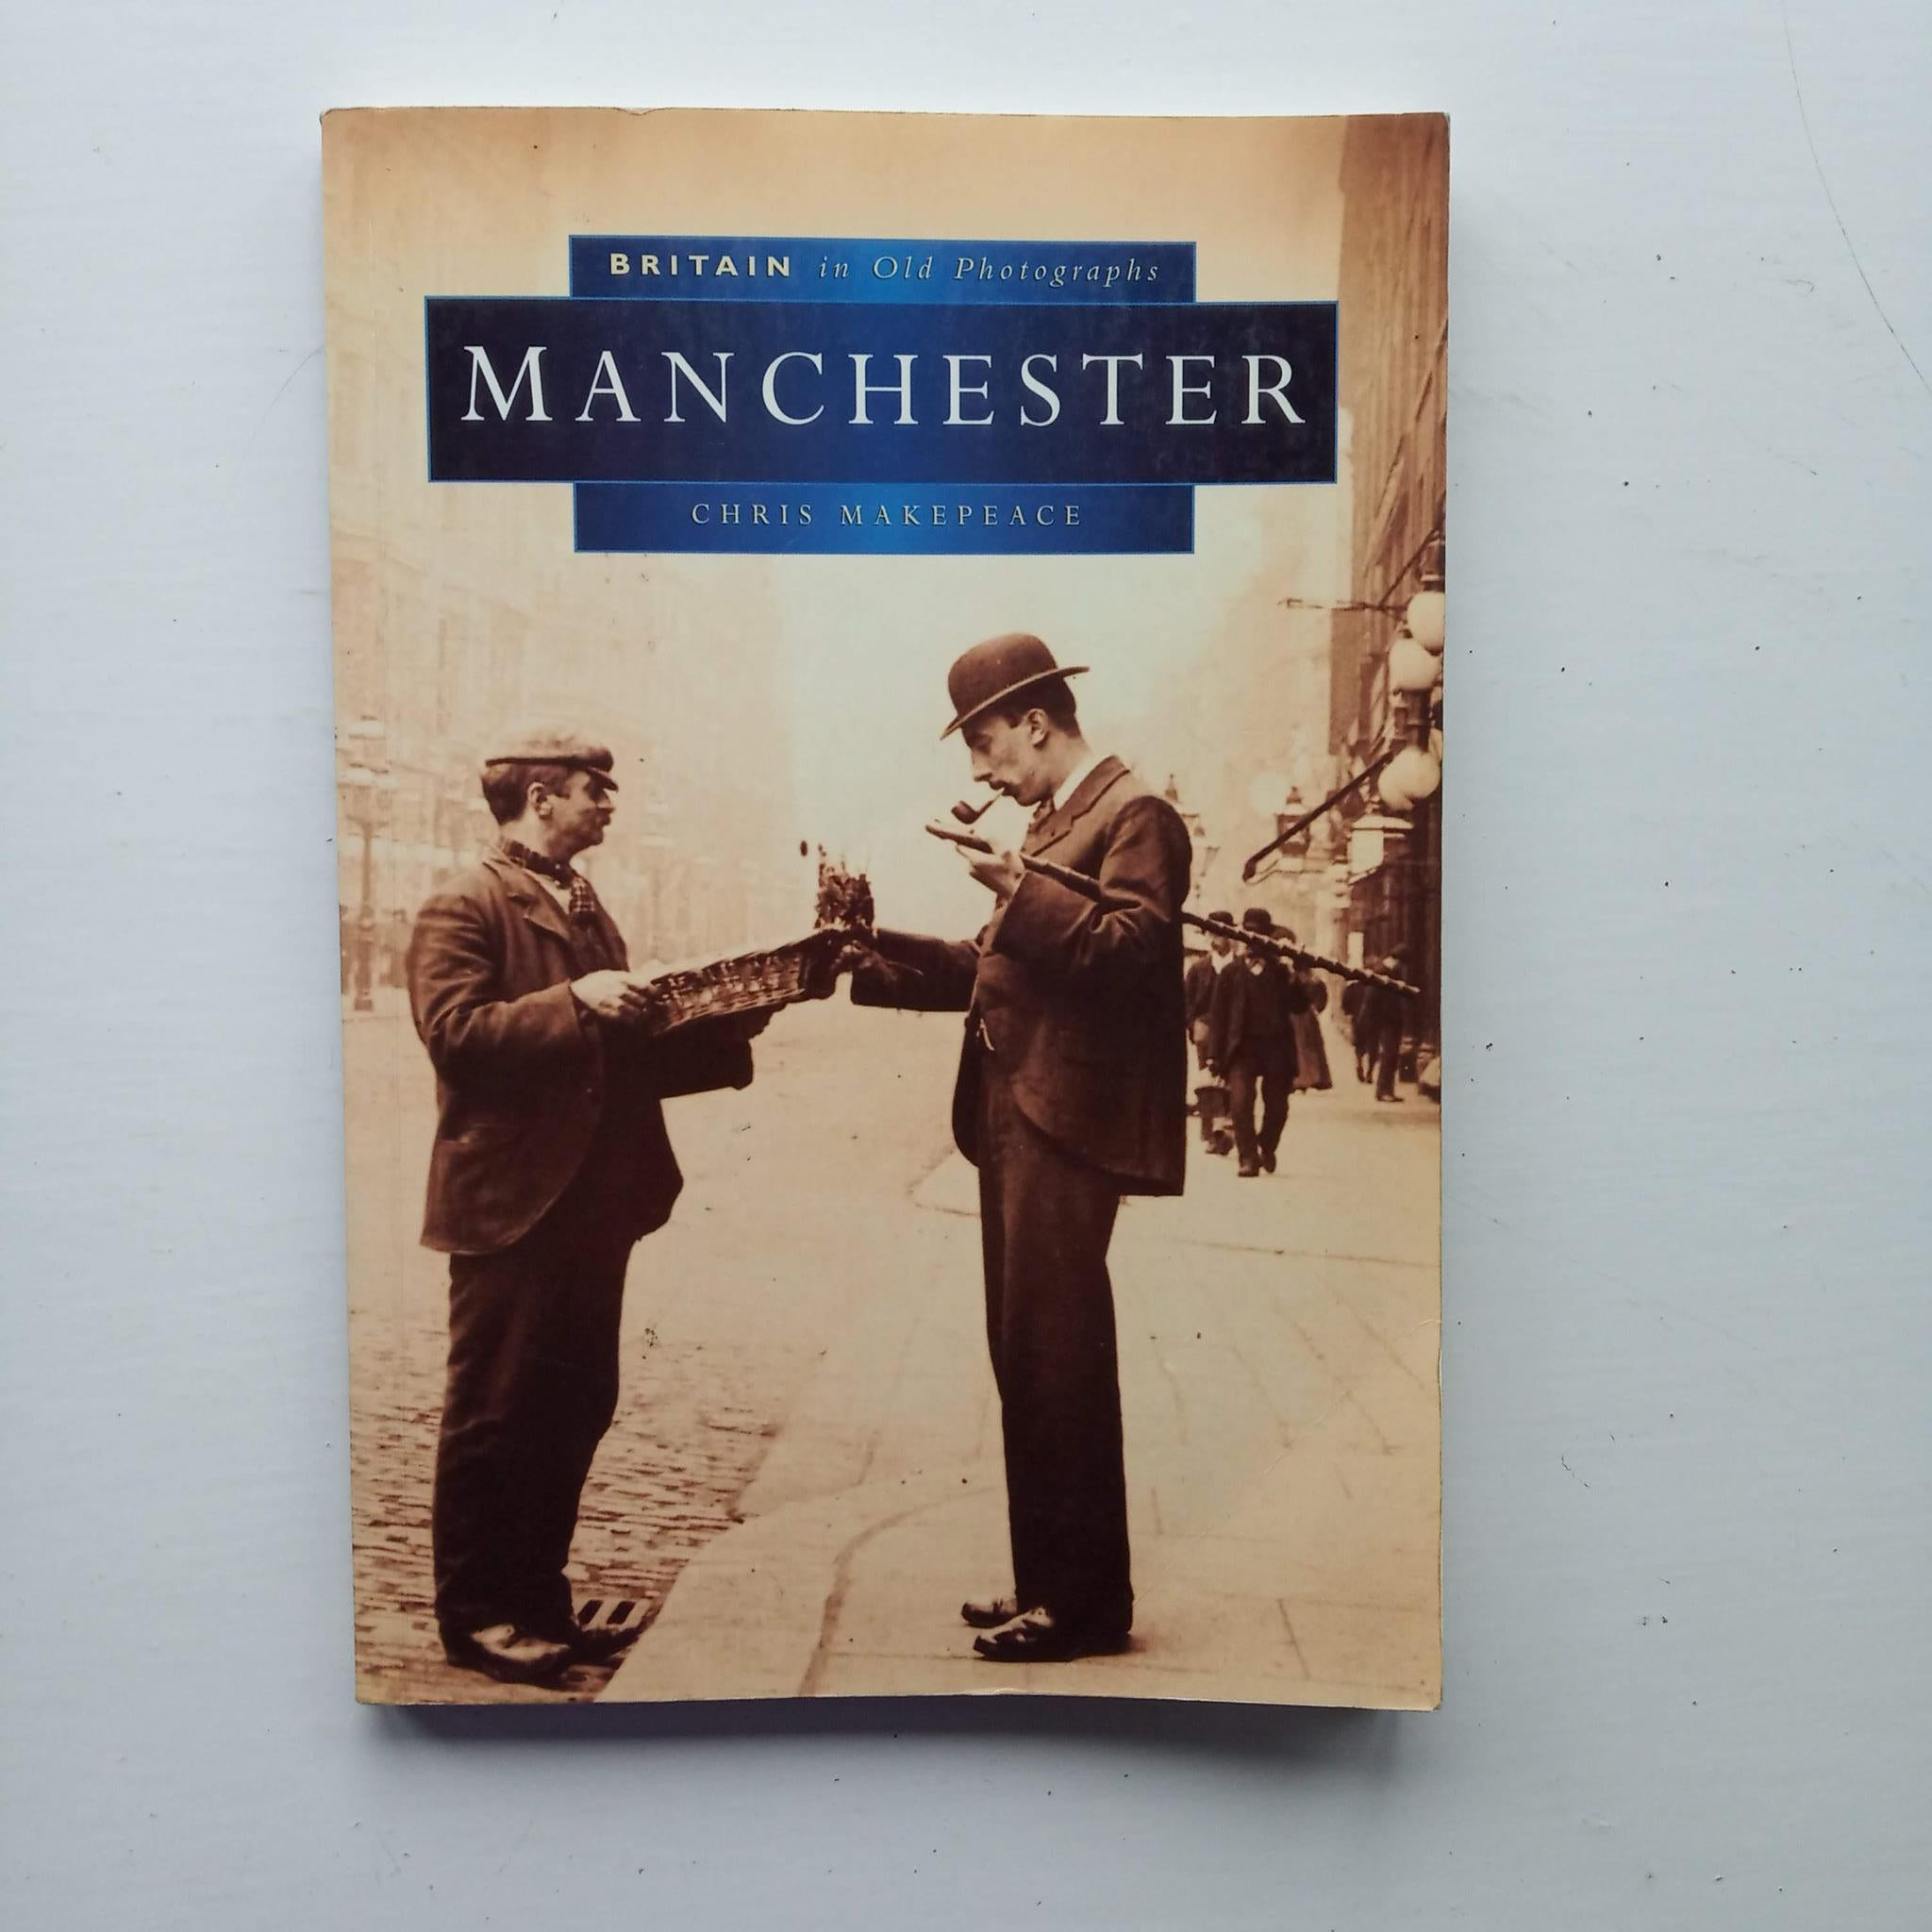 Britain in Old Photographs: Manchester by Chris Makepeace